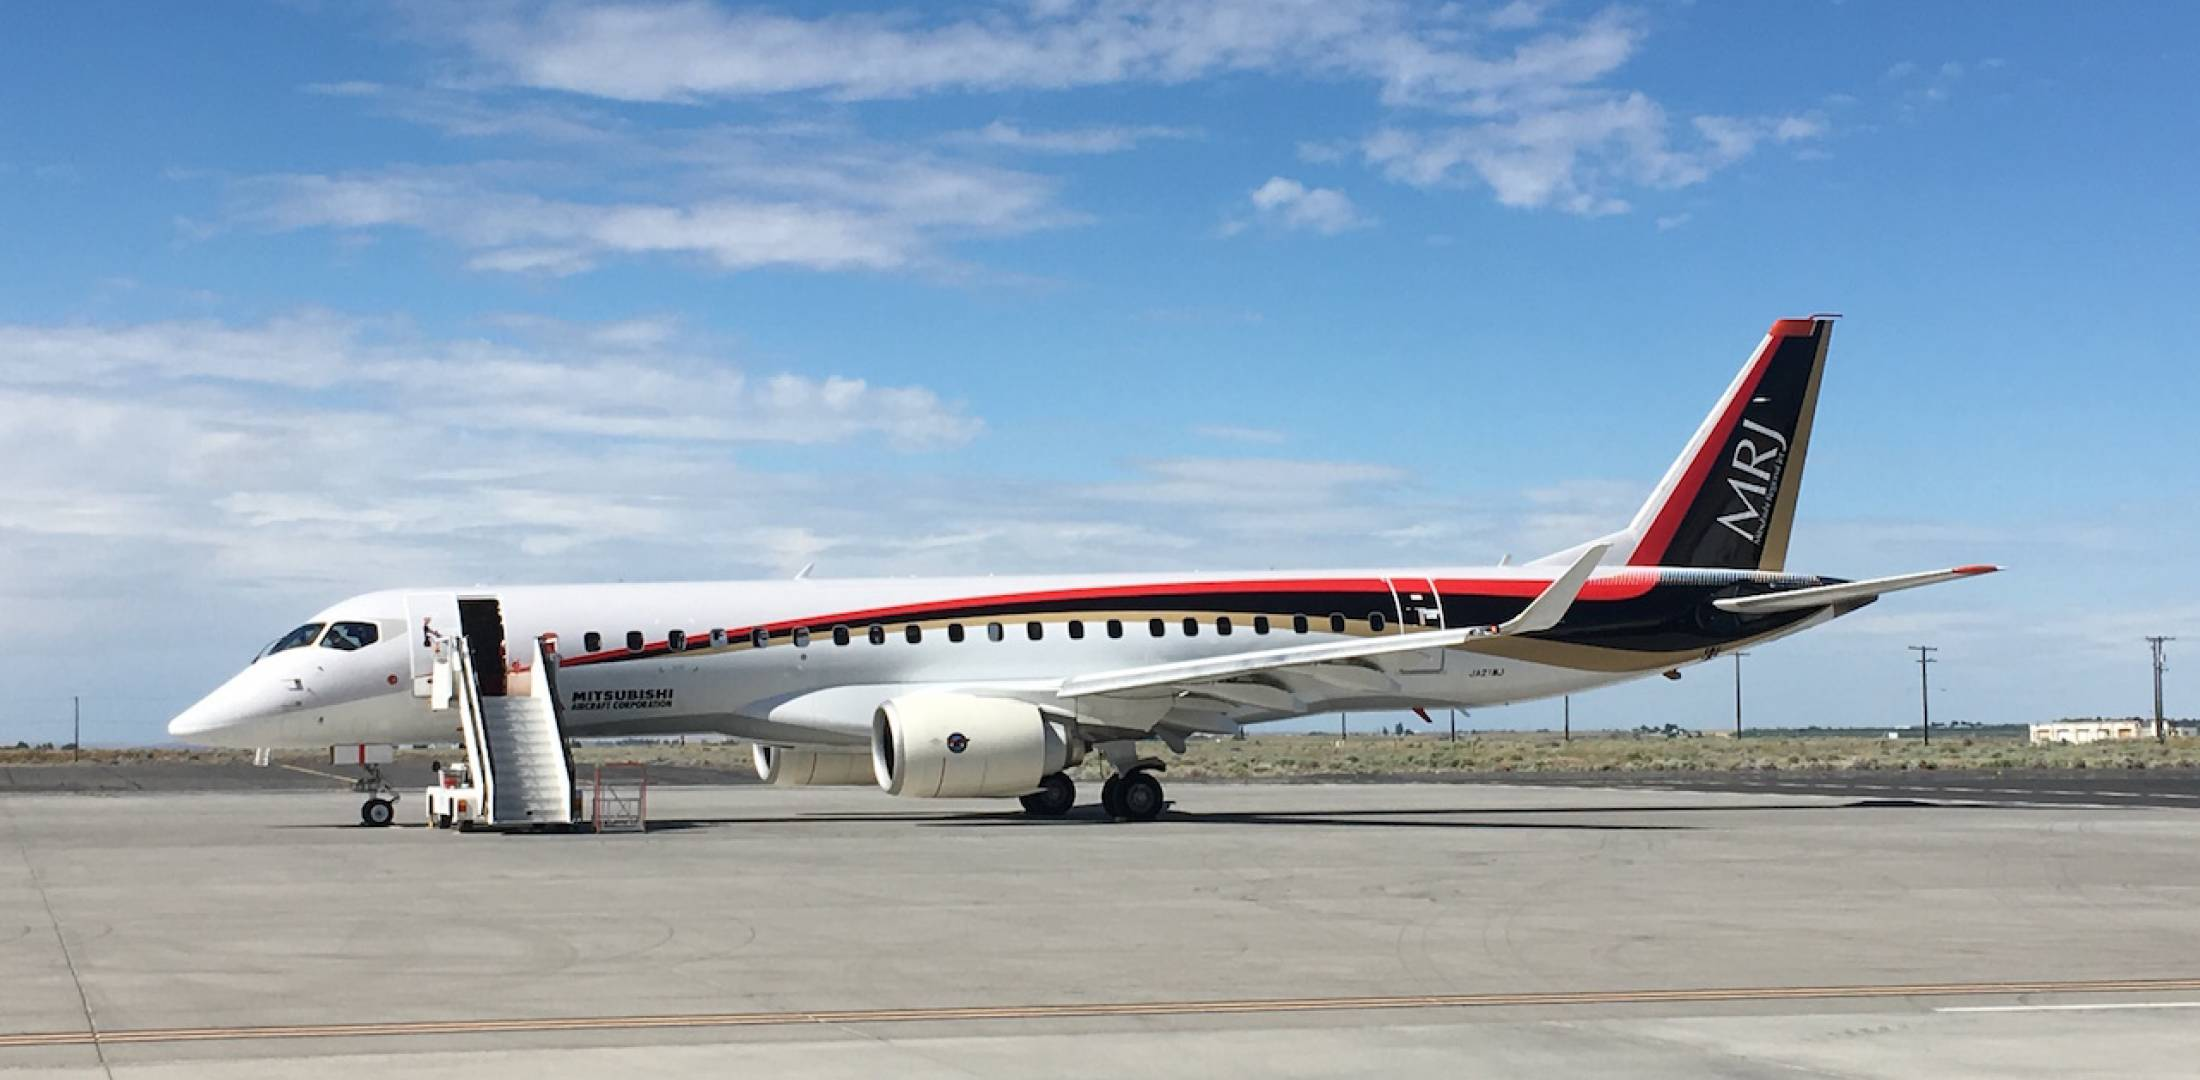 flight-test MRJ on ramp